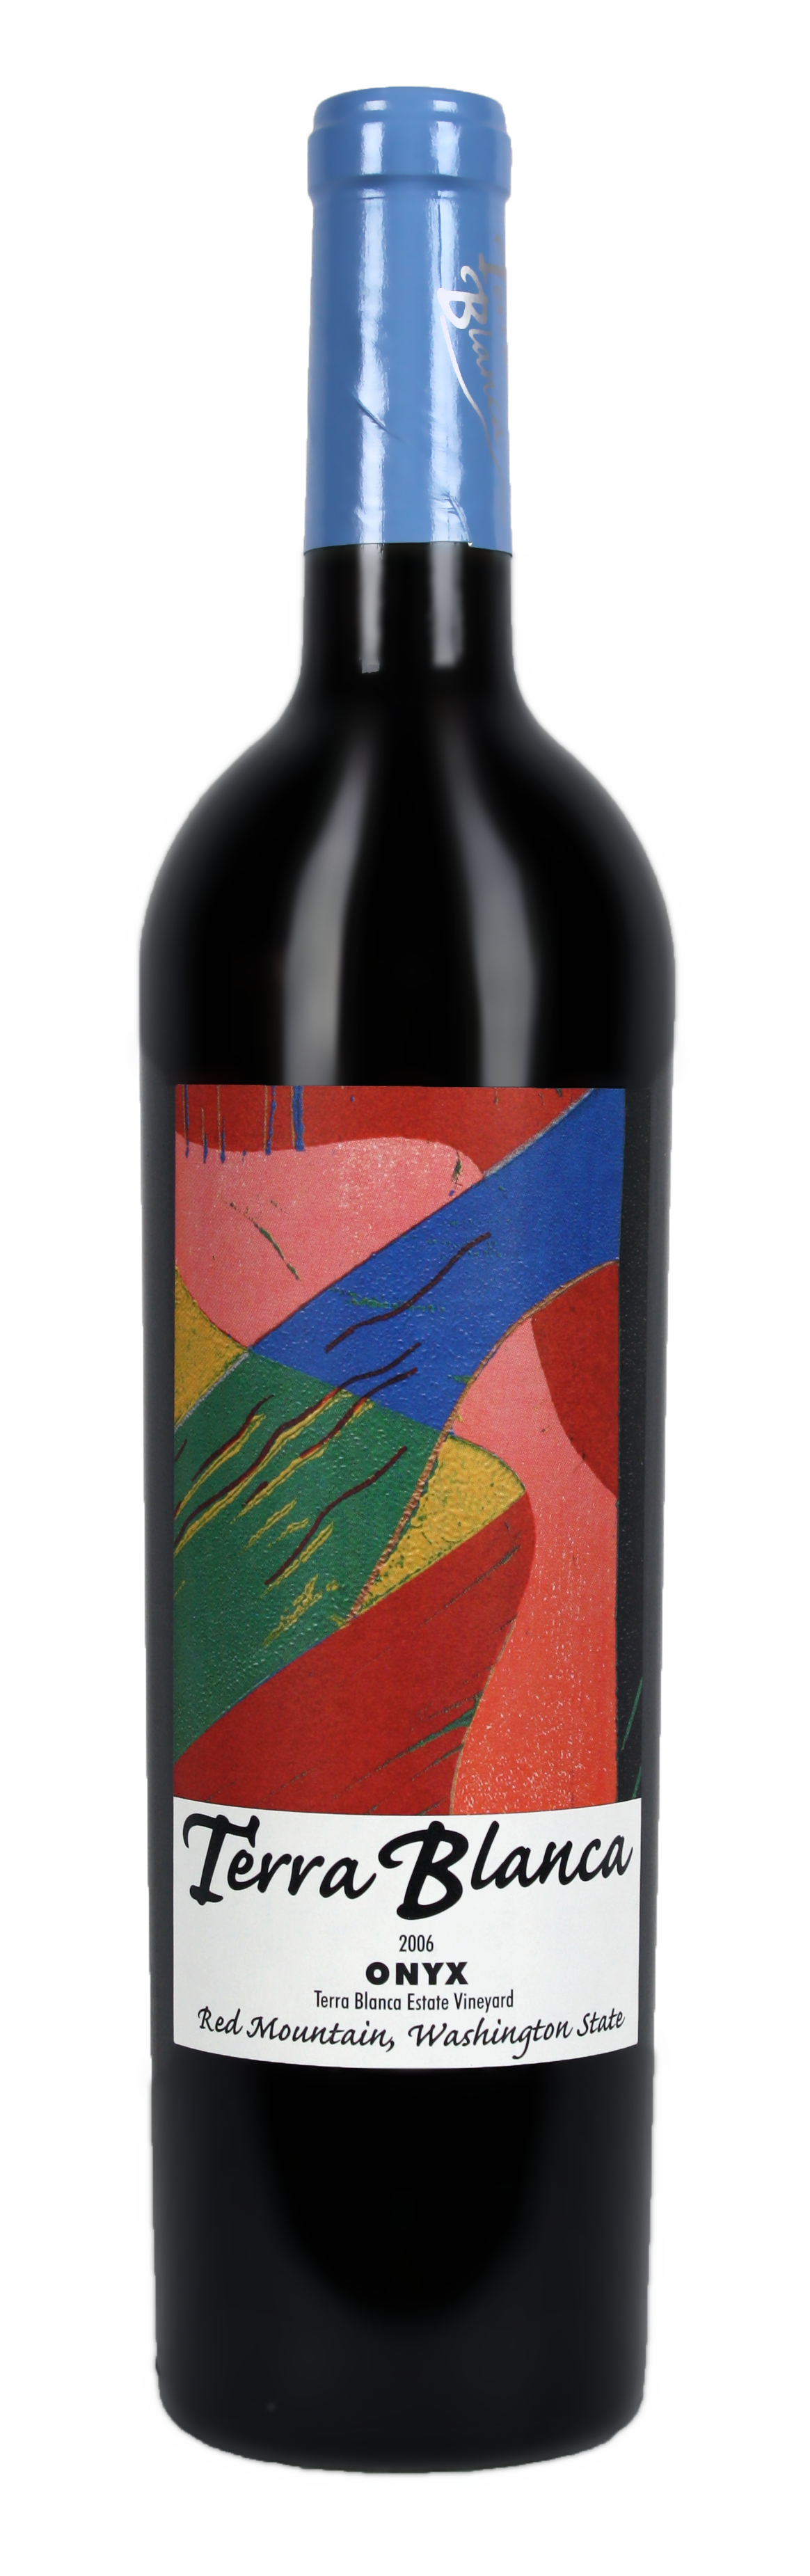 06 Onyx bottle - Terra Blanca – White Earth. Blue Skies. Red Mountain.